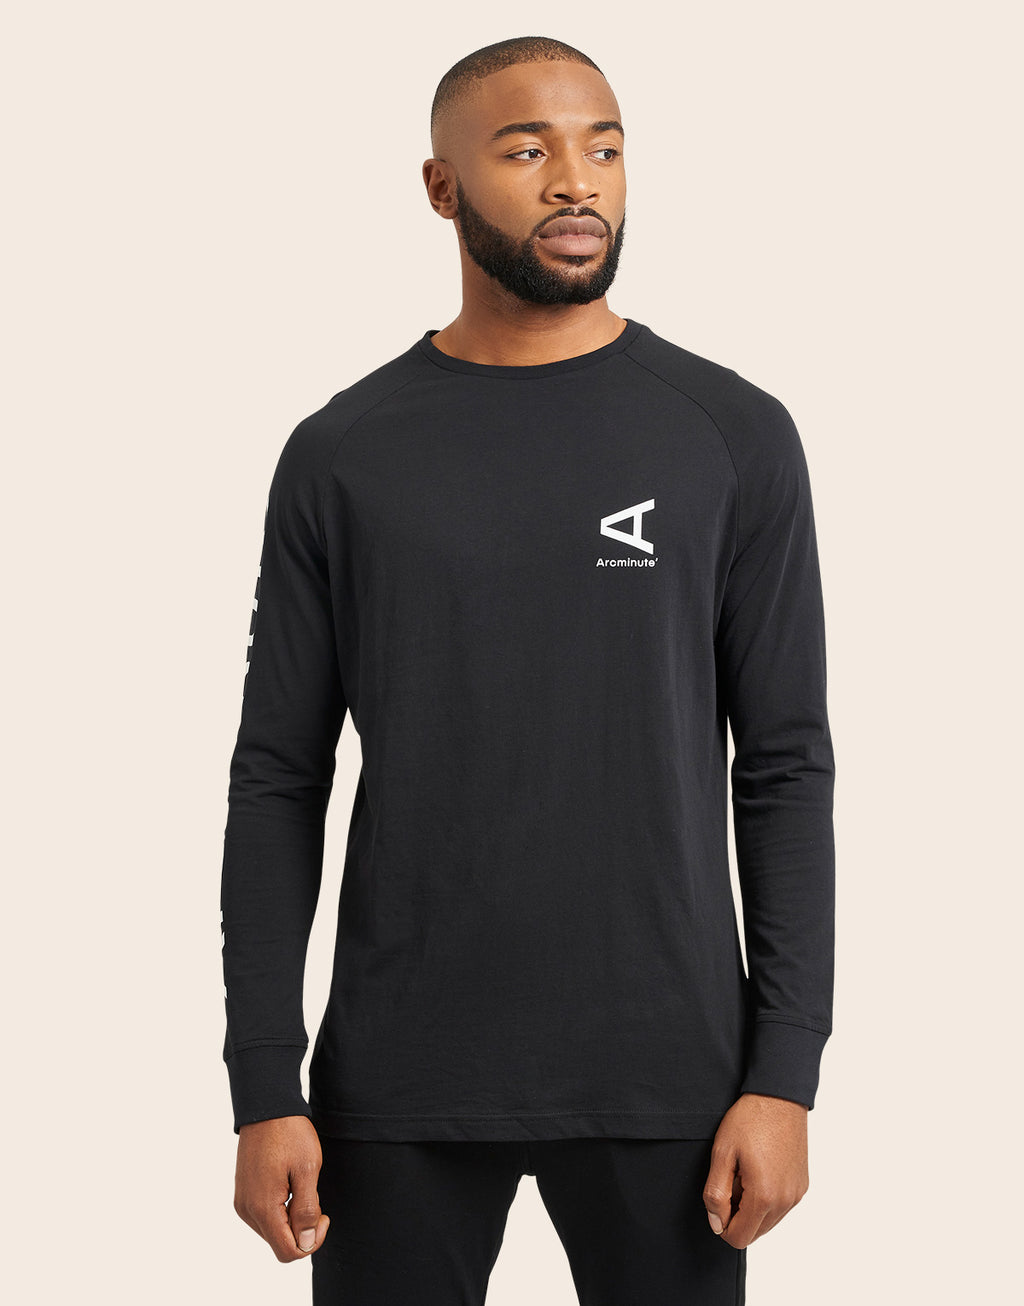 Altare Long Sleeve T-Shirt Black - Arcminute